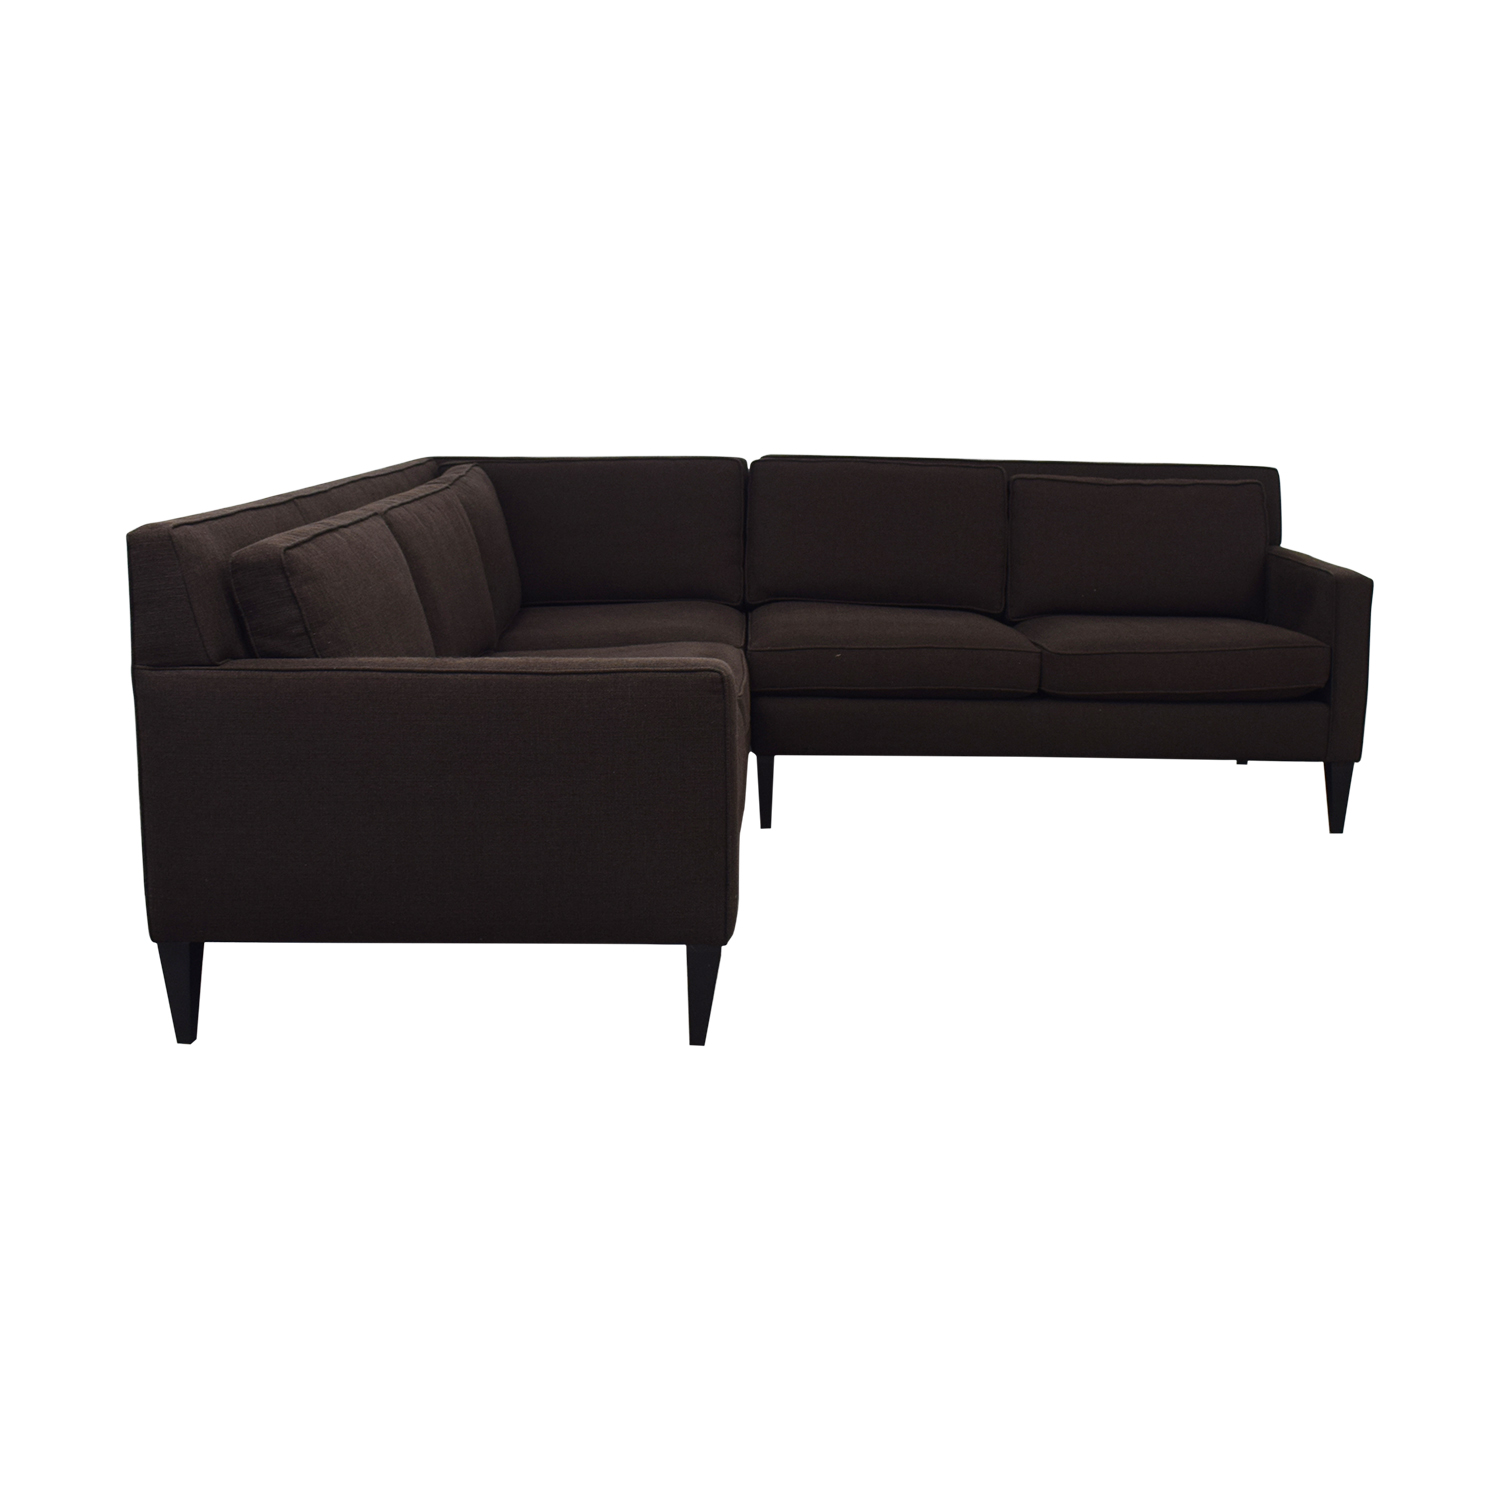 Crate & Barrel Crate & Barrel Rochelle Brown L-Shaped Sectional nj